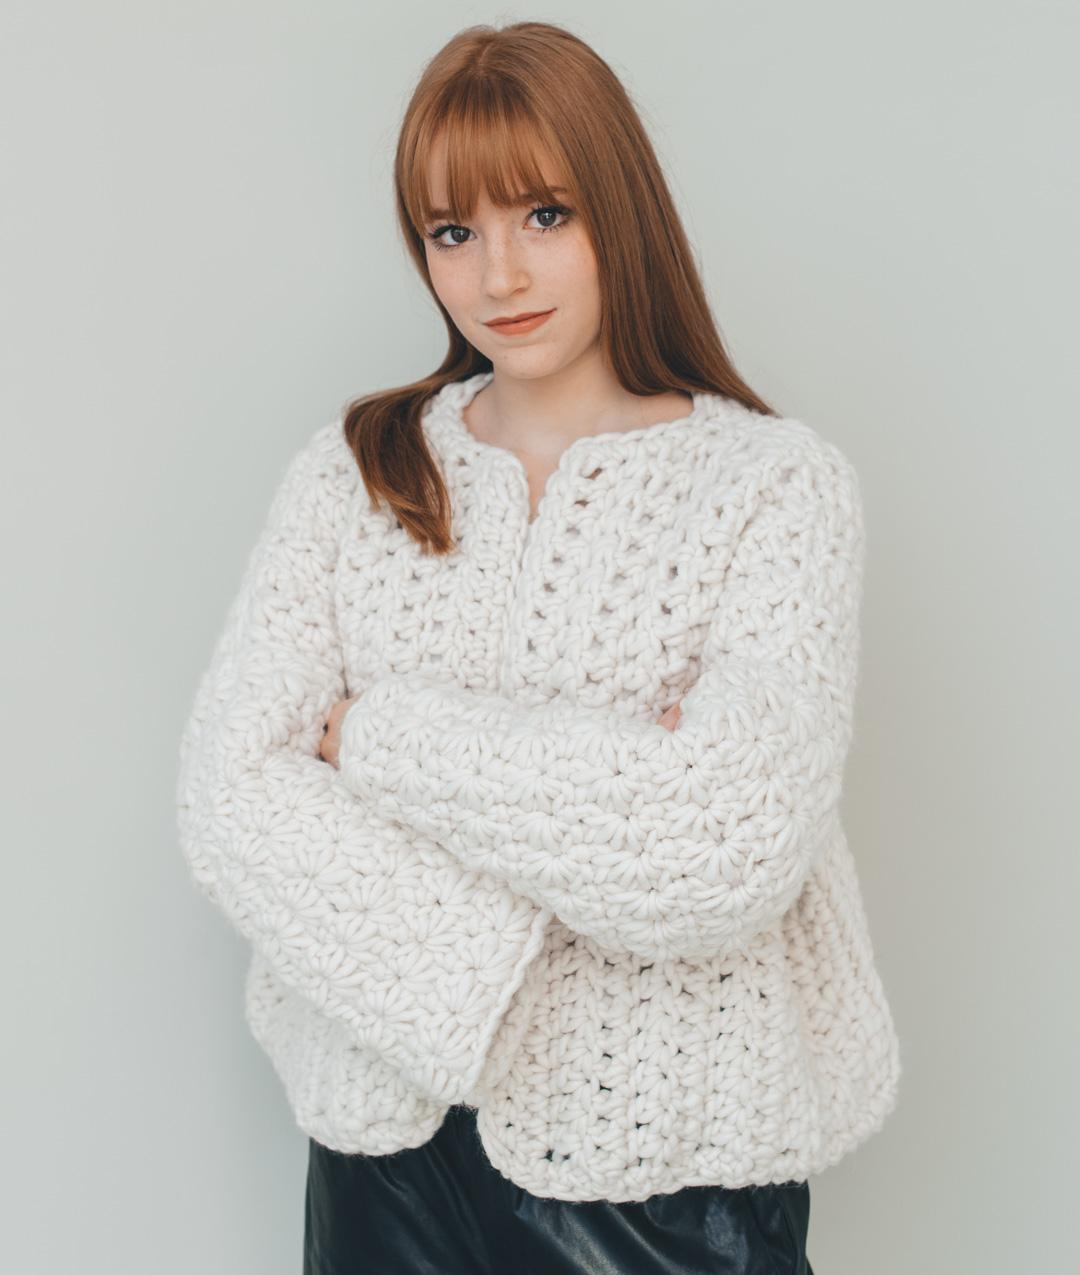 Wool - Knit Kits - SNOW FLAKE CARDI - 1